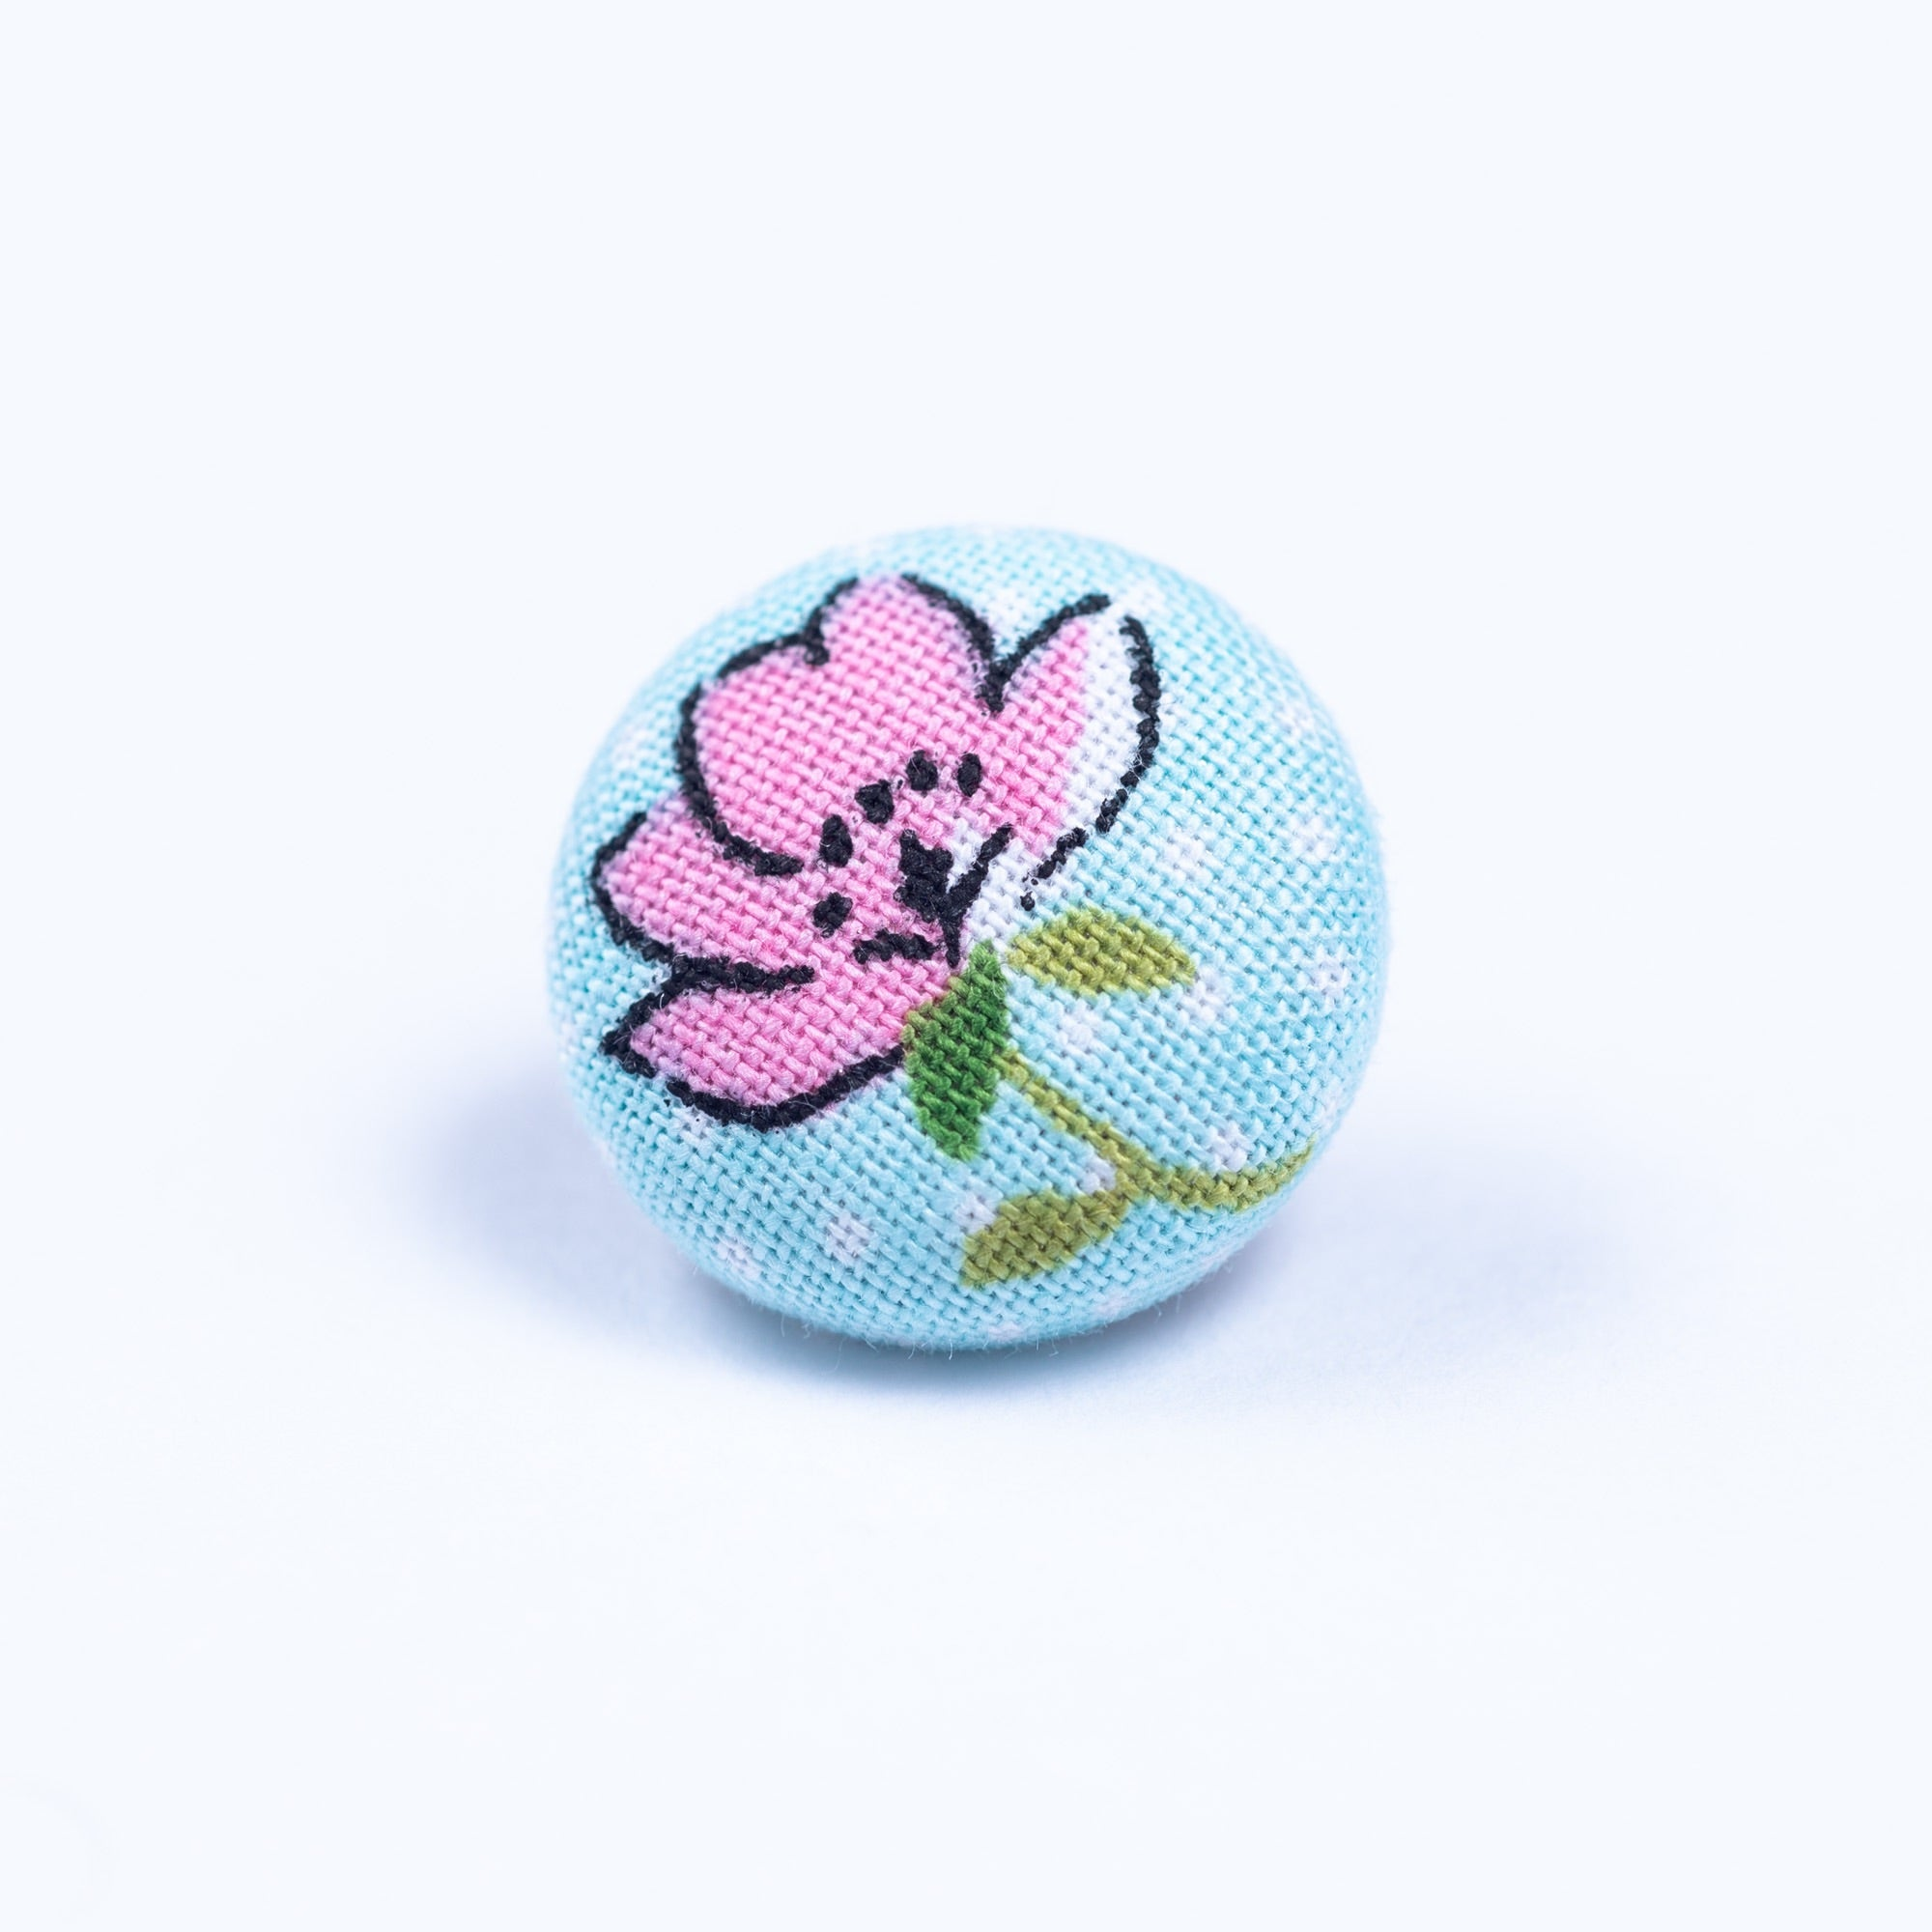 blue and pink button lapel pin - Oxford Square